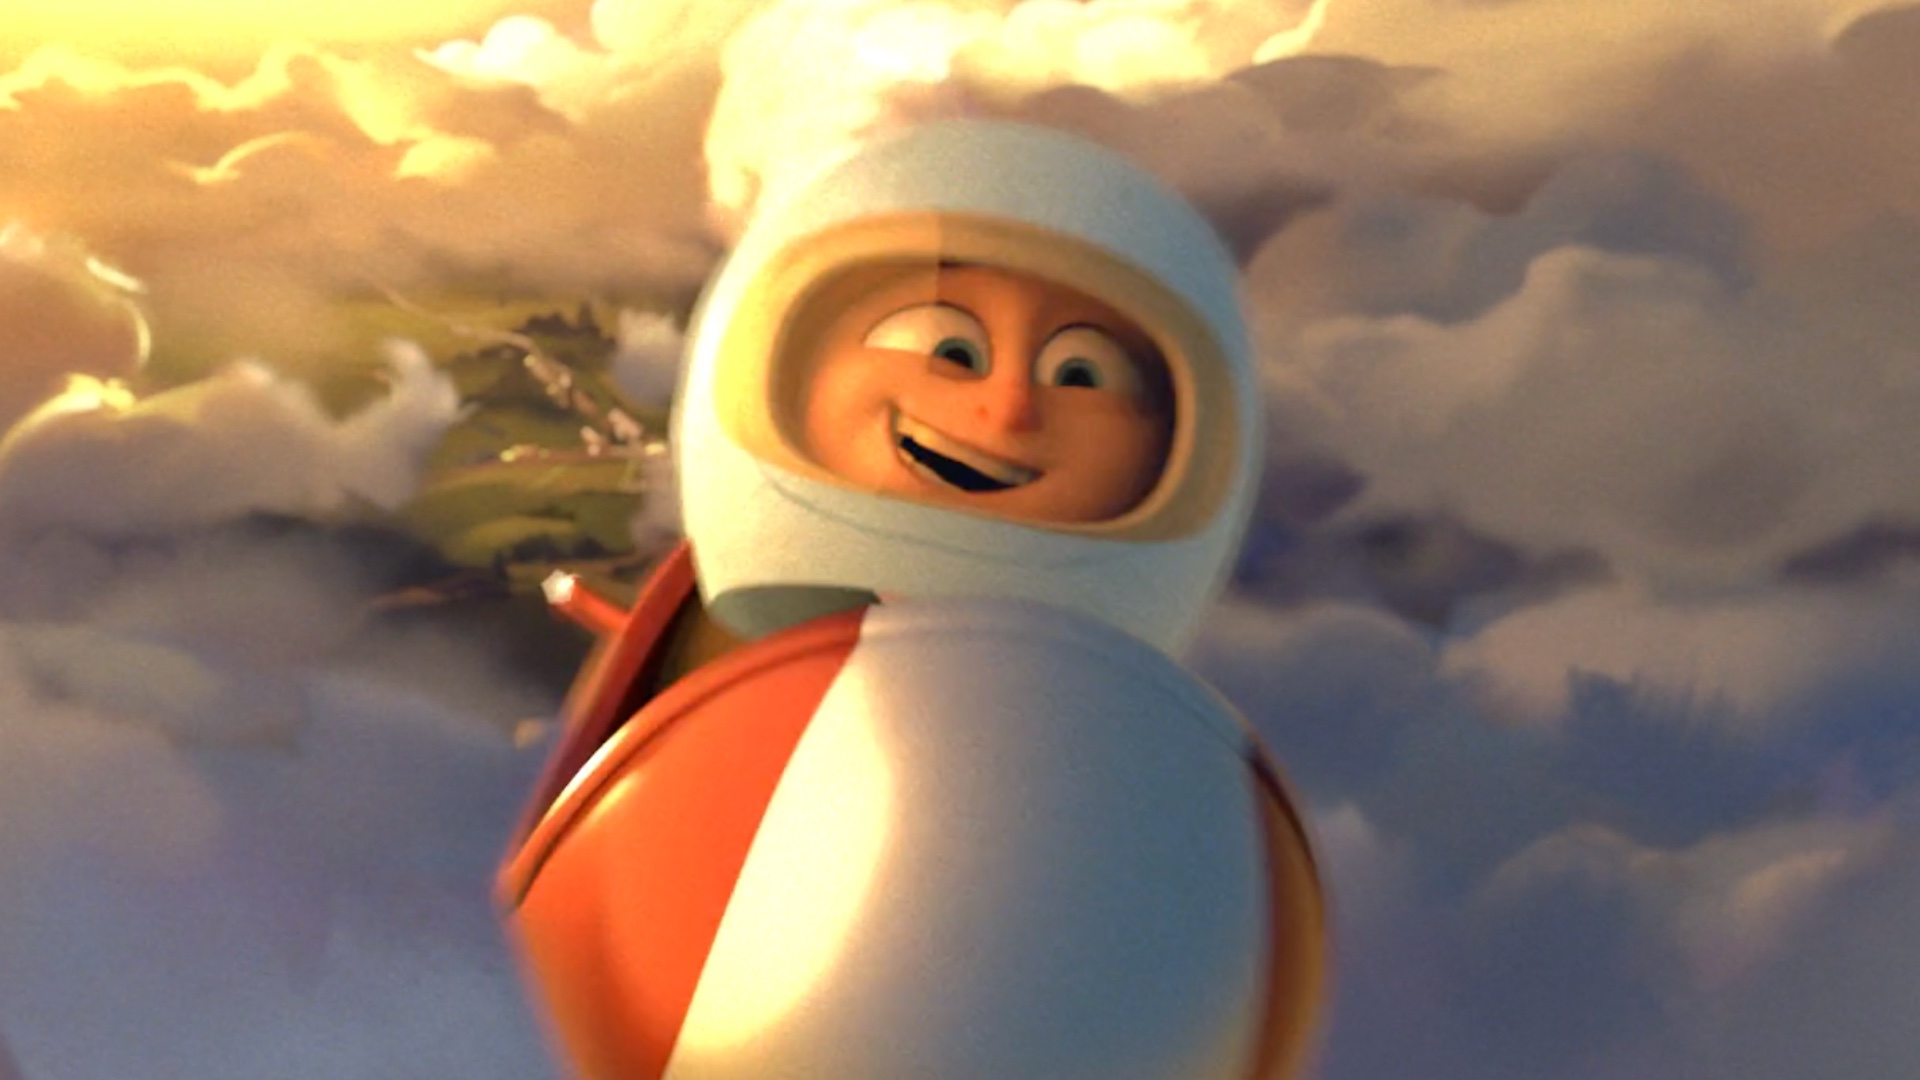 coin-operated-is-an-imaginative-animated-short-that-tells-the-story-of-a-boy-who-wants-to-rocket-into-space-social.jpg